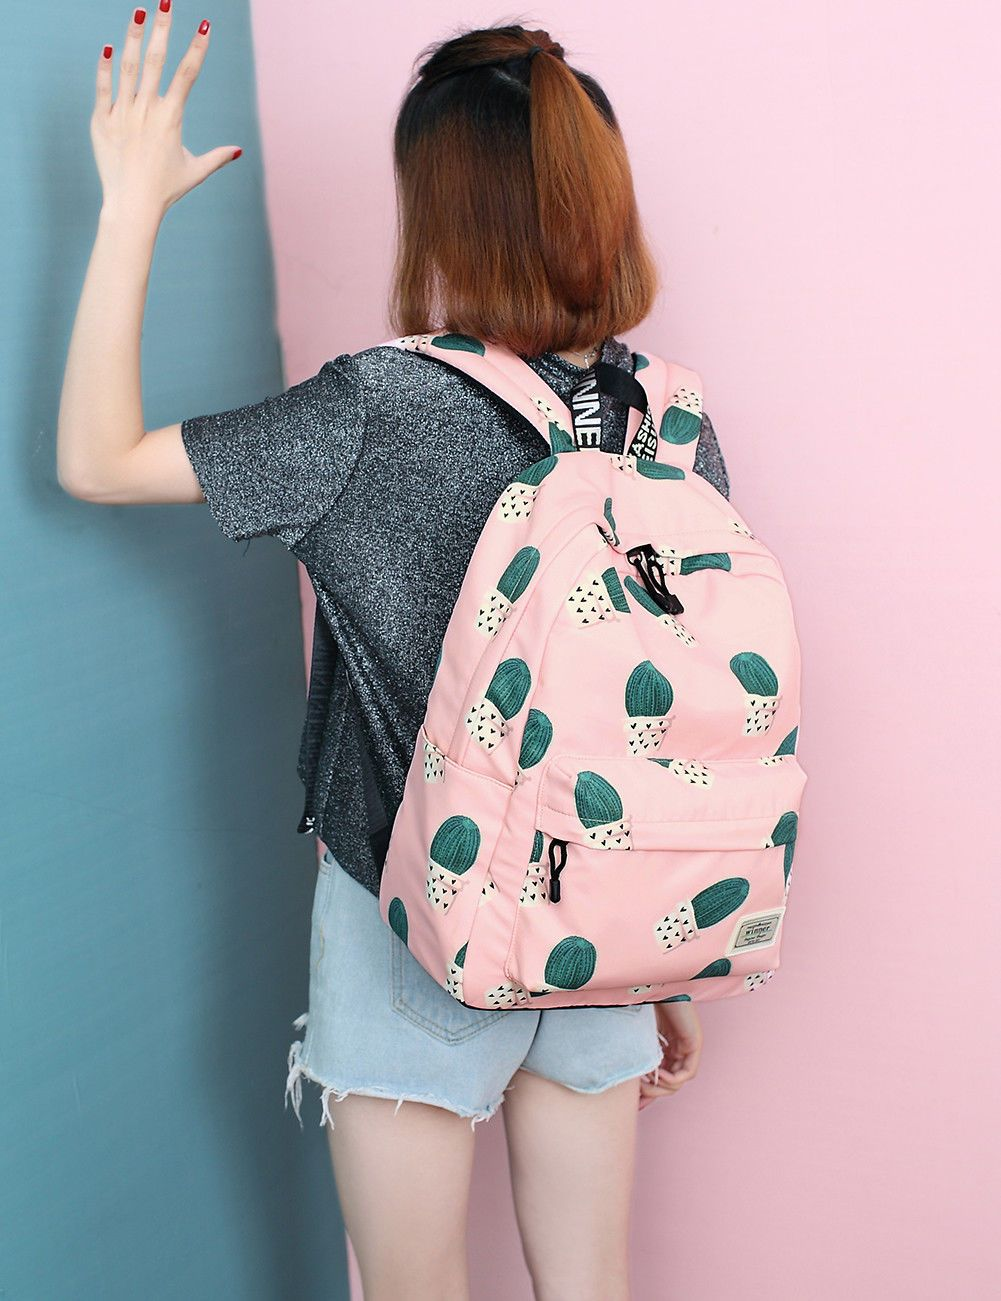 Kids' Clothes, Shoes & Accs. Luggage Bright Canvas Backpack Travel Rucksack Adjustable Bag Boys Girls College Uni School Goods Of Every Description Are Available